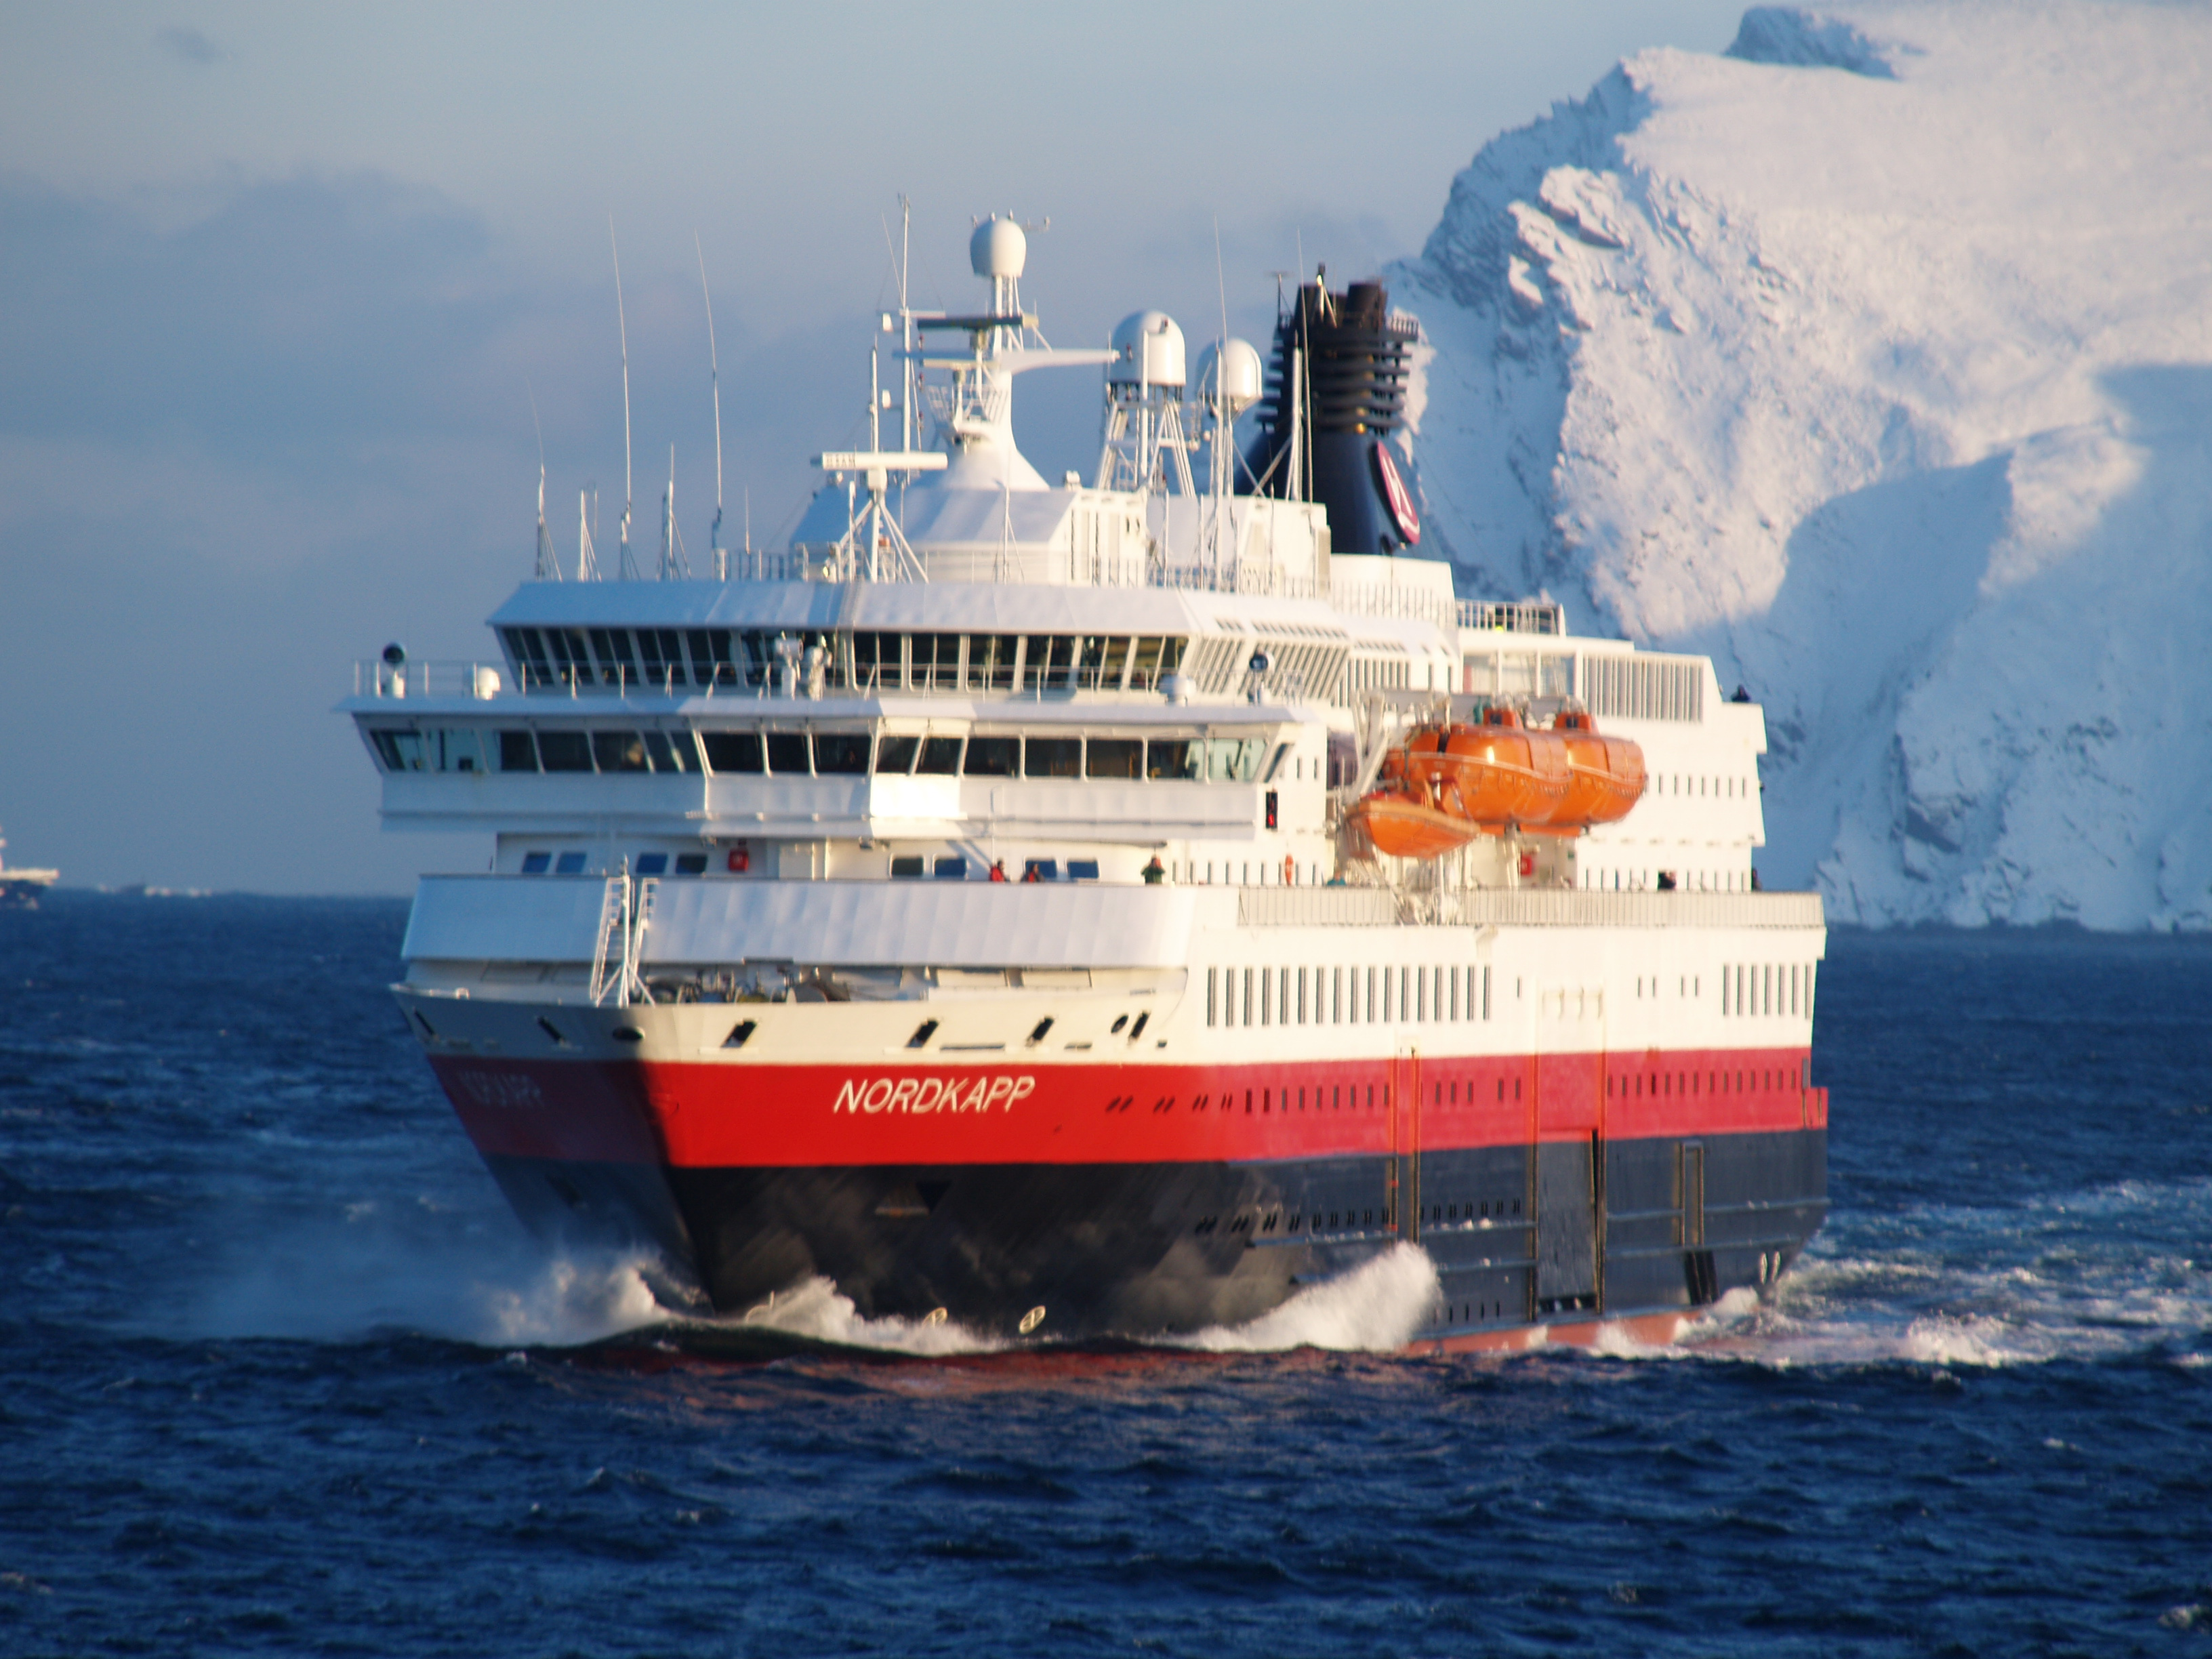 Hurtigruten Ships, the ship servicing Classic Norwegian Fjords (Roundtrip)